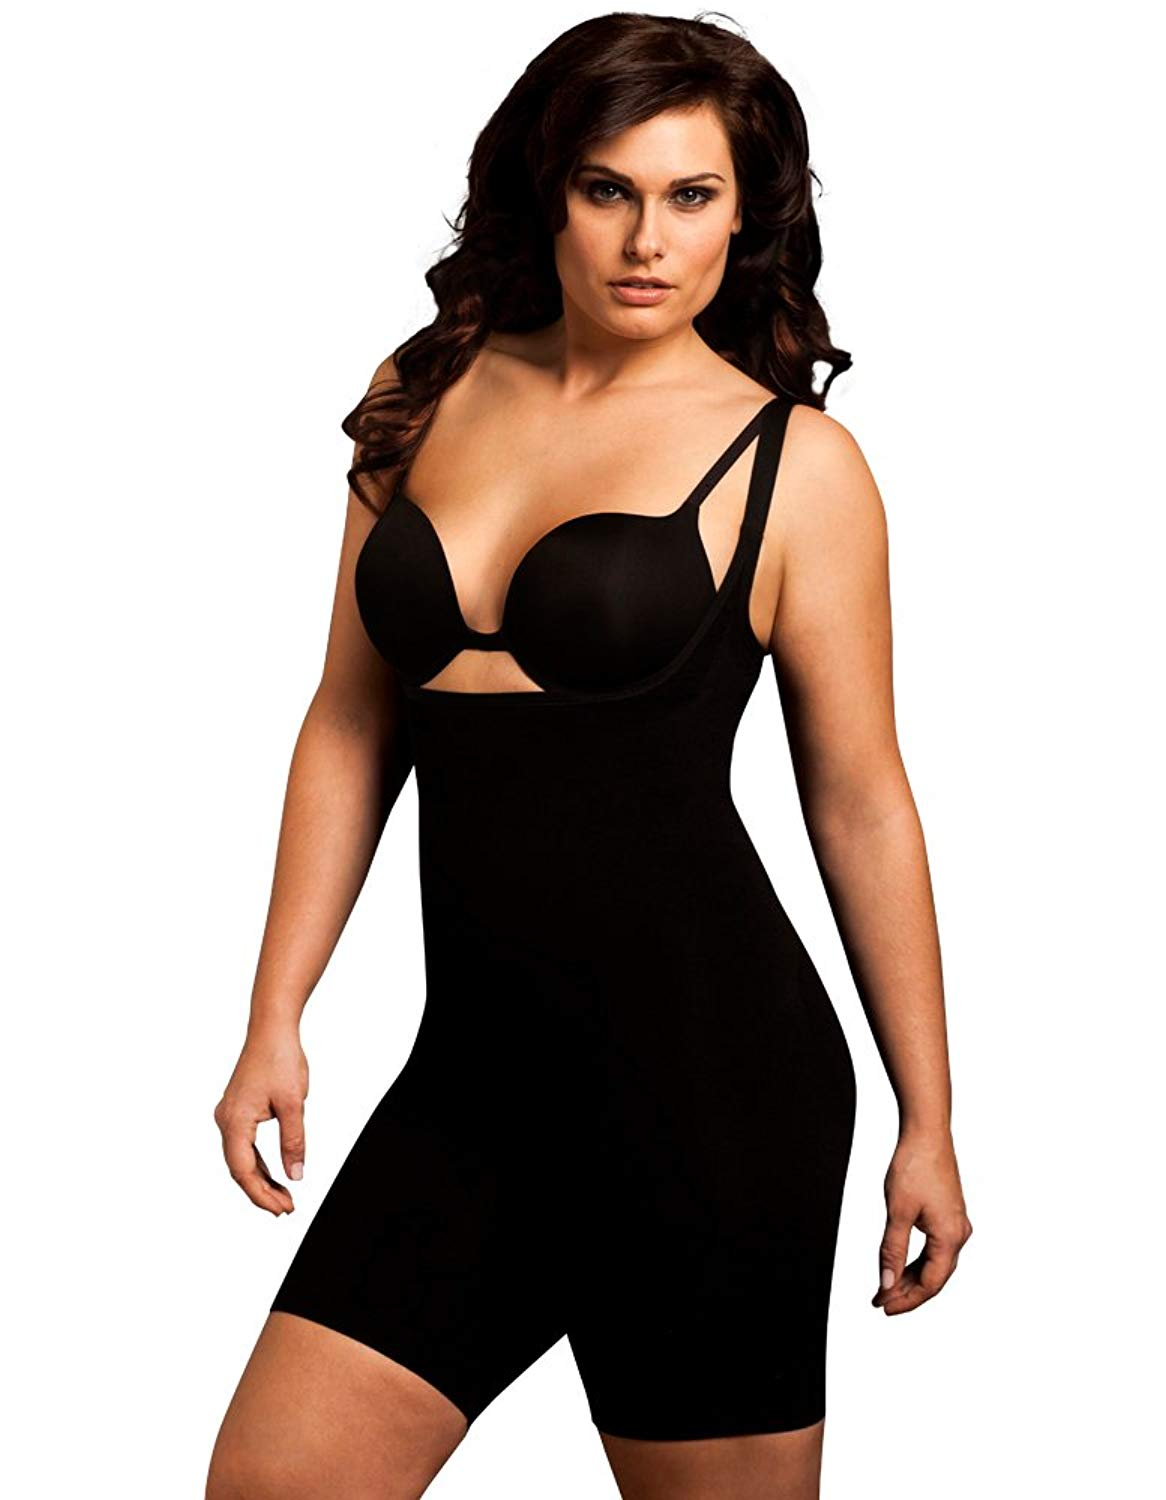 4f60b4630 Get Quotations · Body Wrap Plus Size Seamless Long Thigh Under Bust Bodysuit  Shaper Black Nude